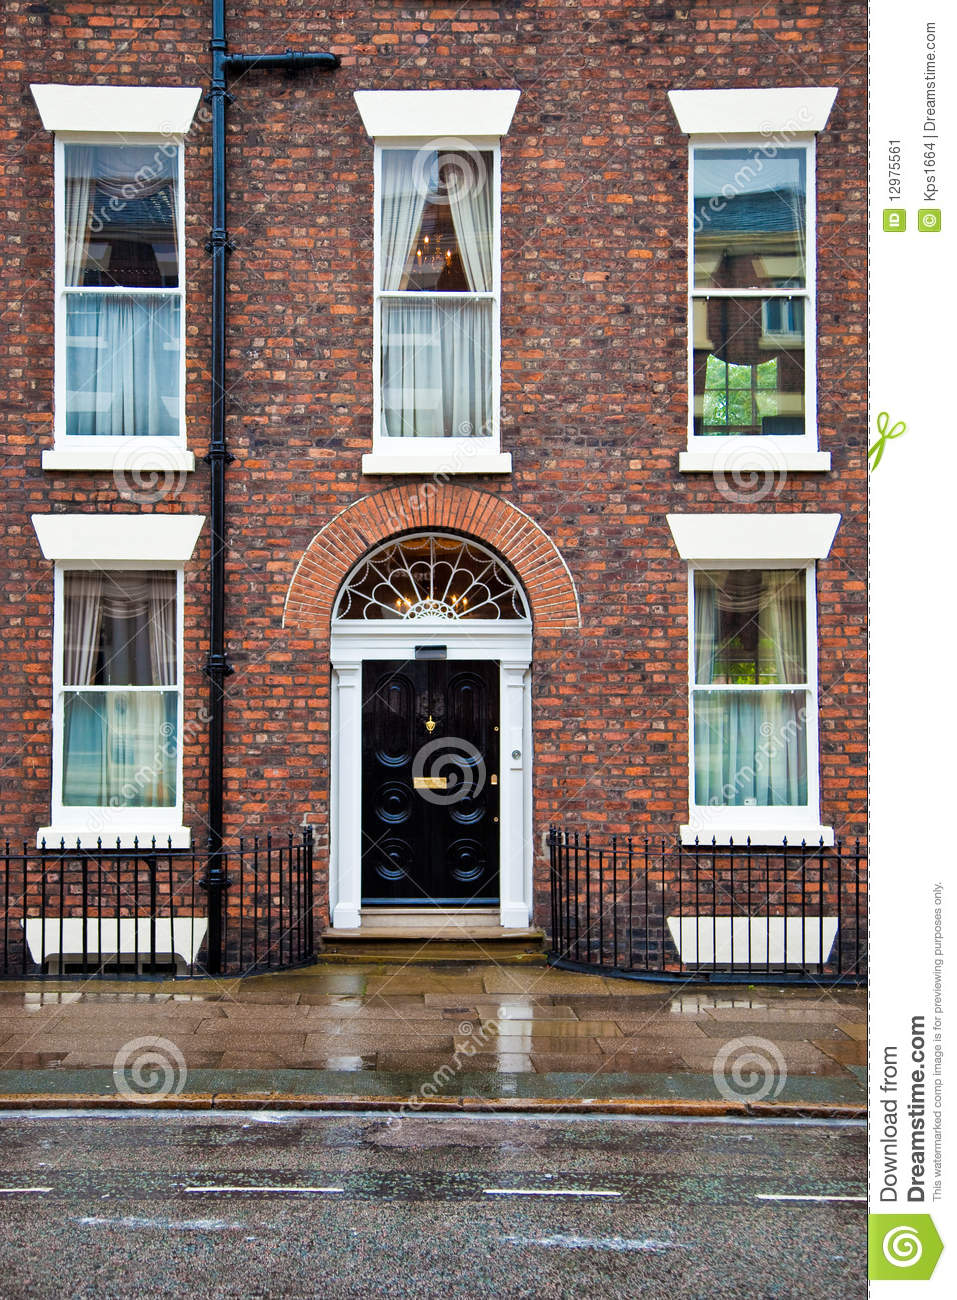 Plans For Building A New House House With Brick Facade And Doorway Stock Image - Image